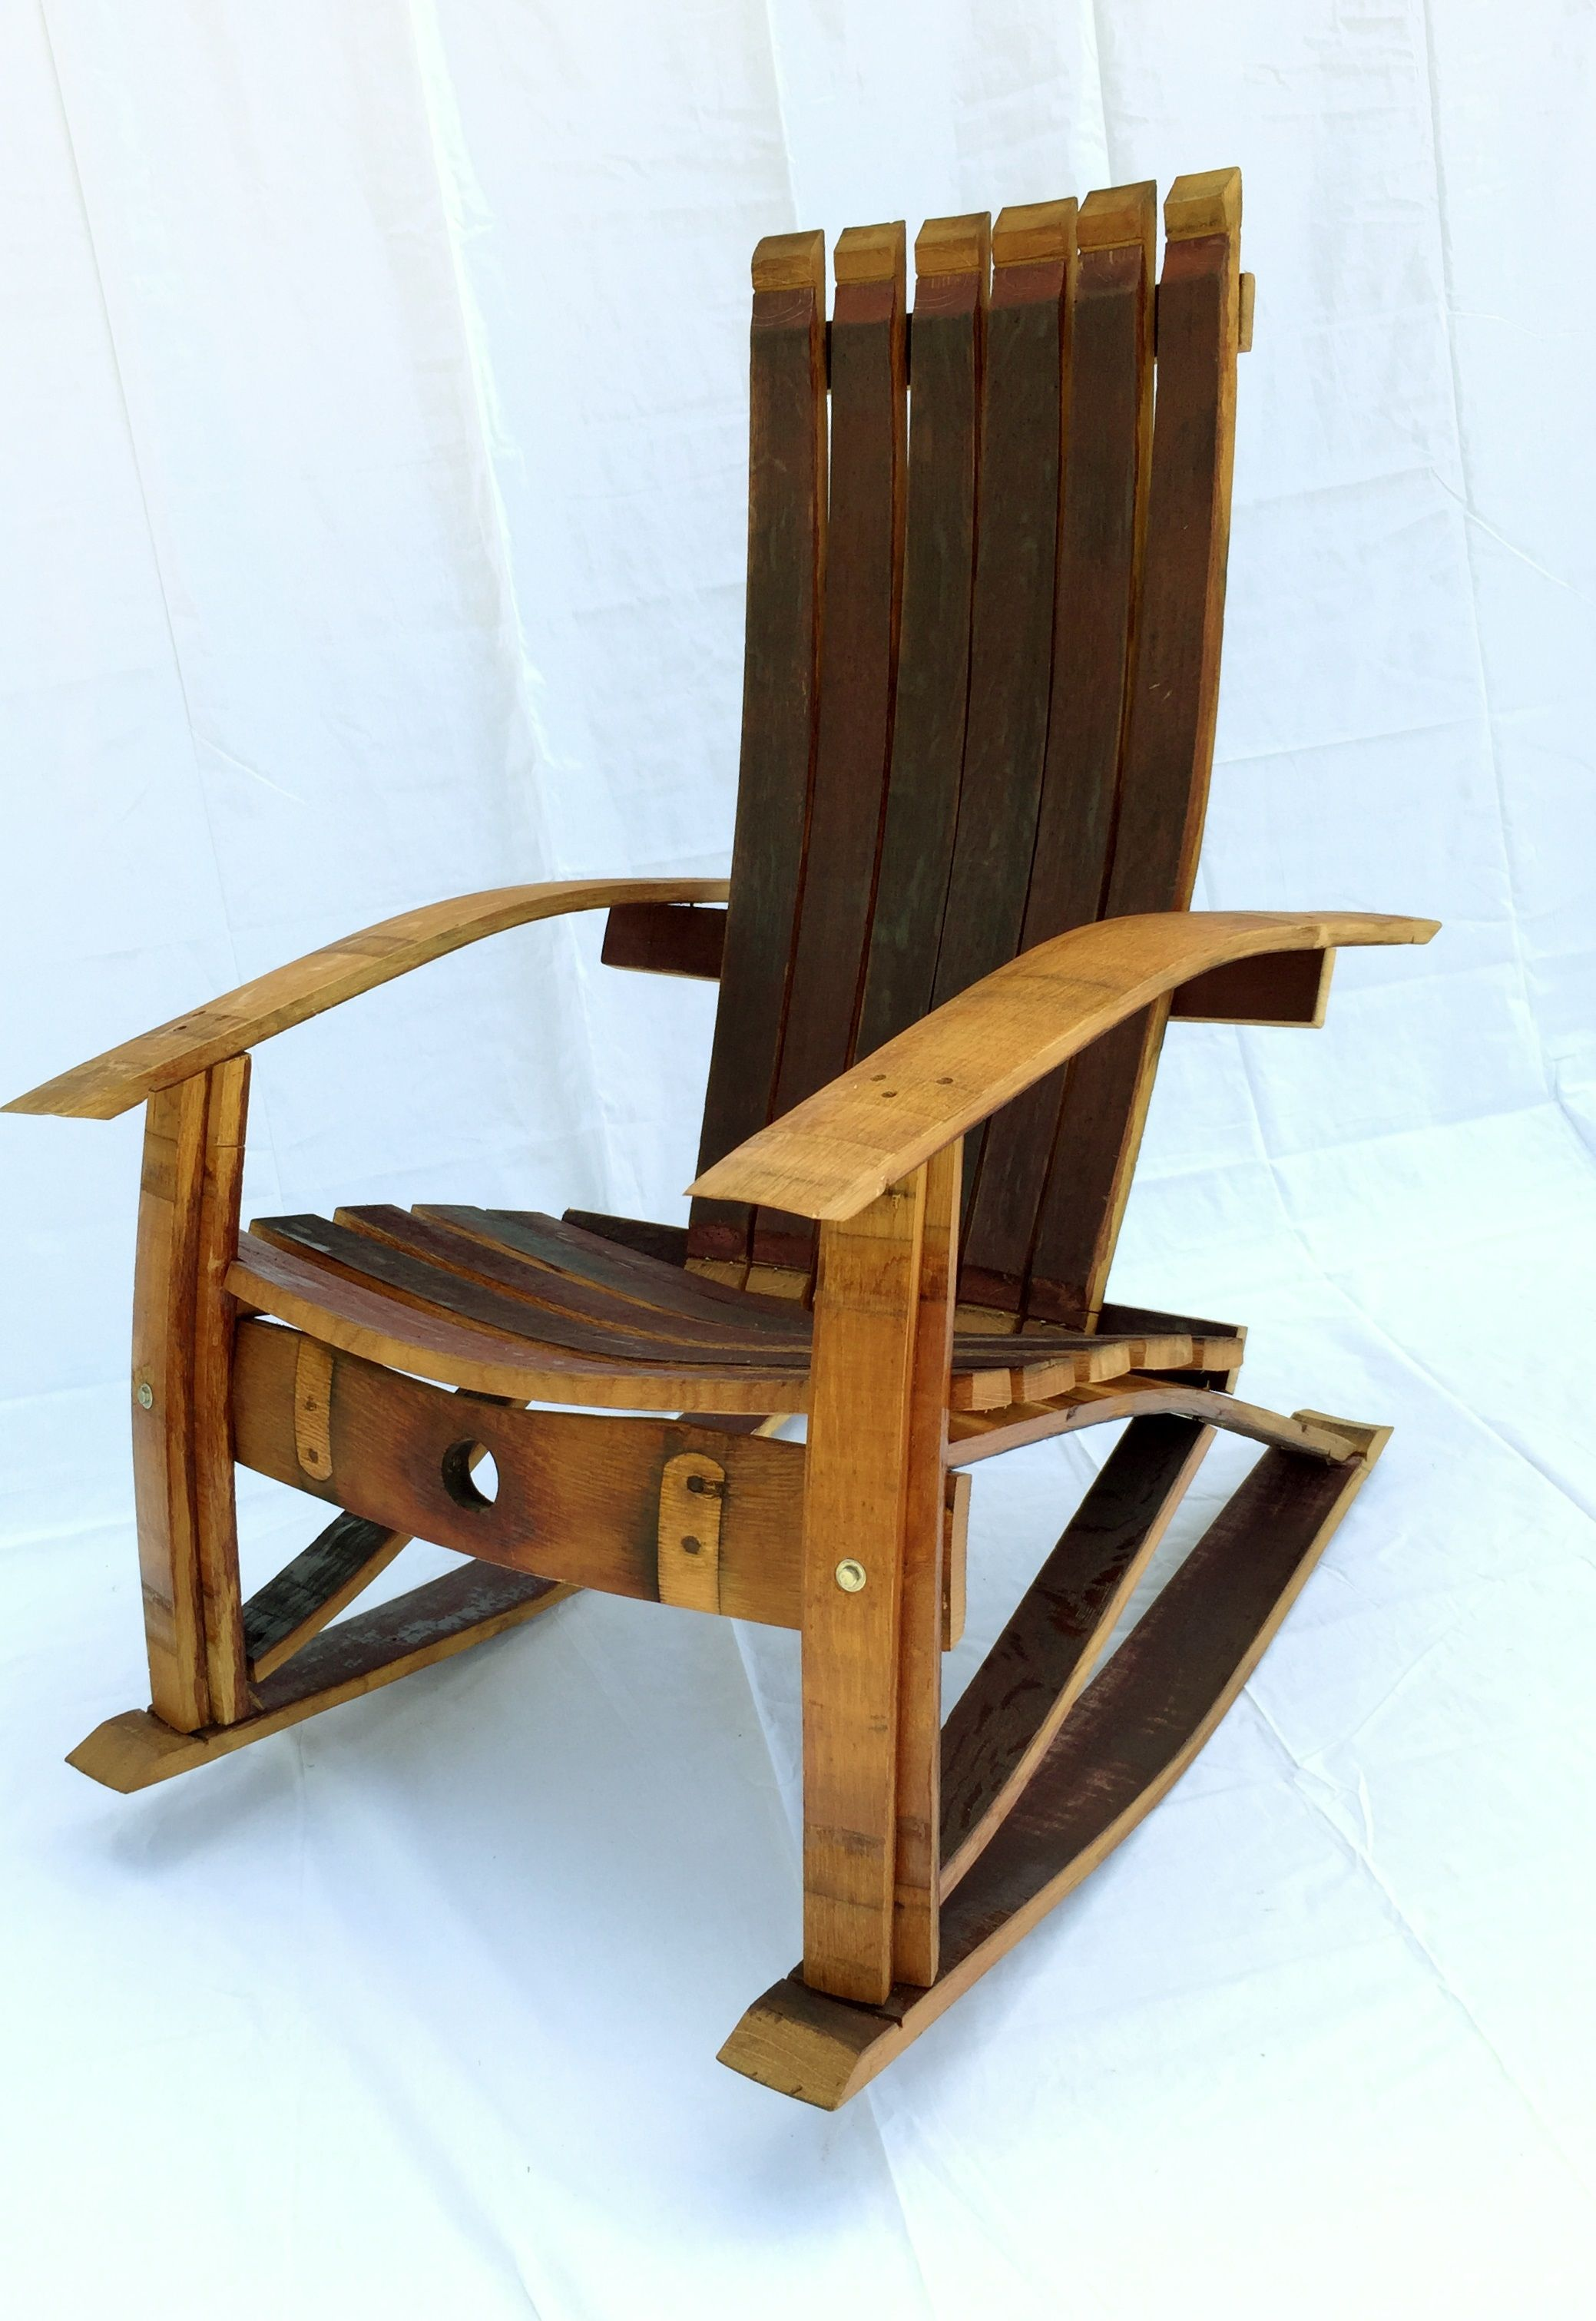 Fauteuils Relax Variance Diy Wine Barrel Rocking Chair Wood Plans Very Simple To